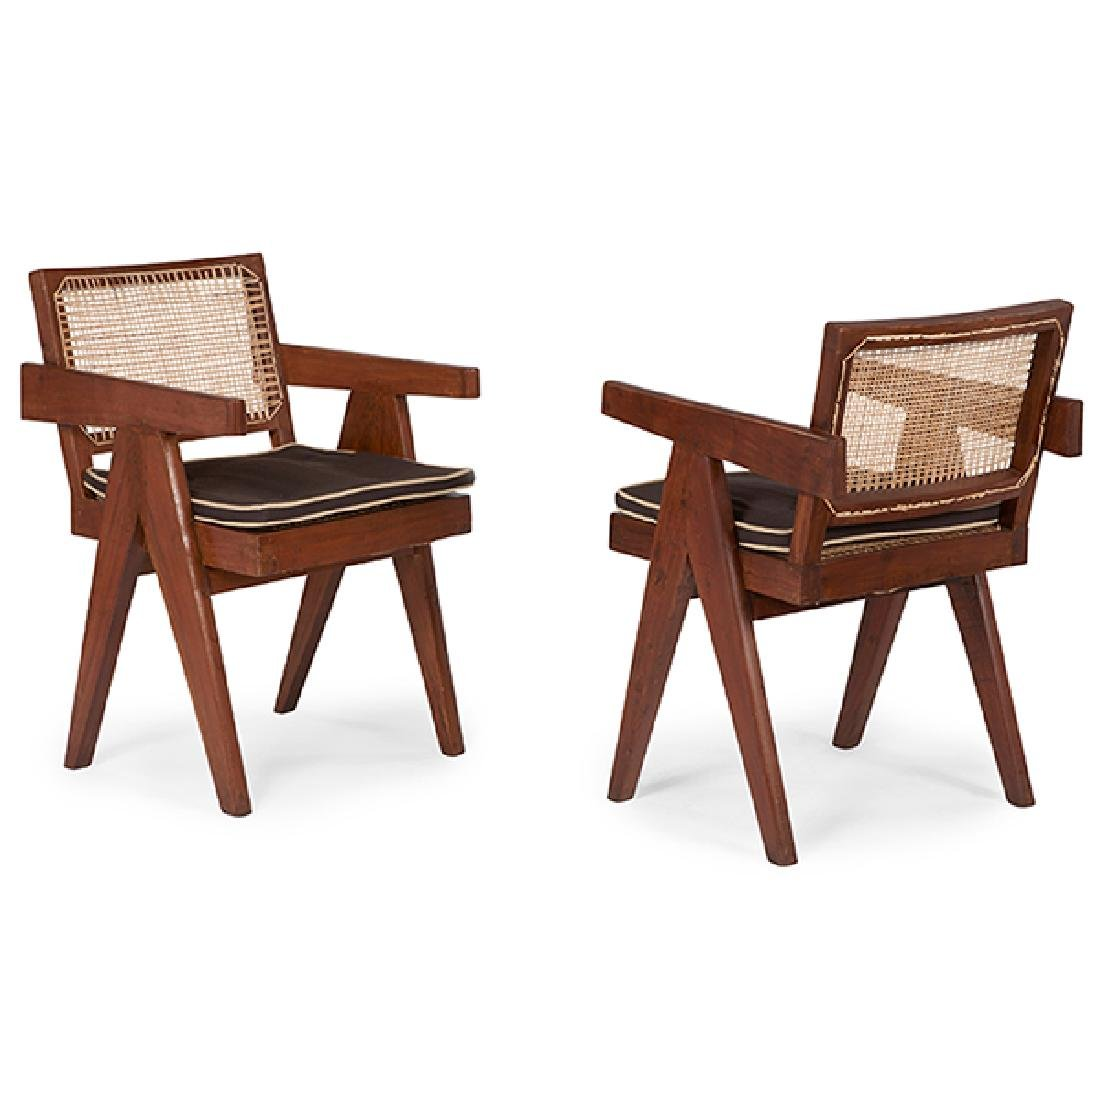 Pierre Jeanneret (1896-1967) Office Cane Chair, pair,